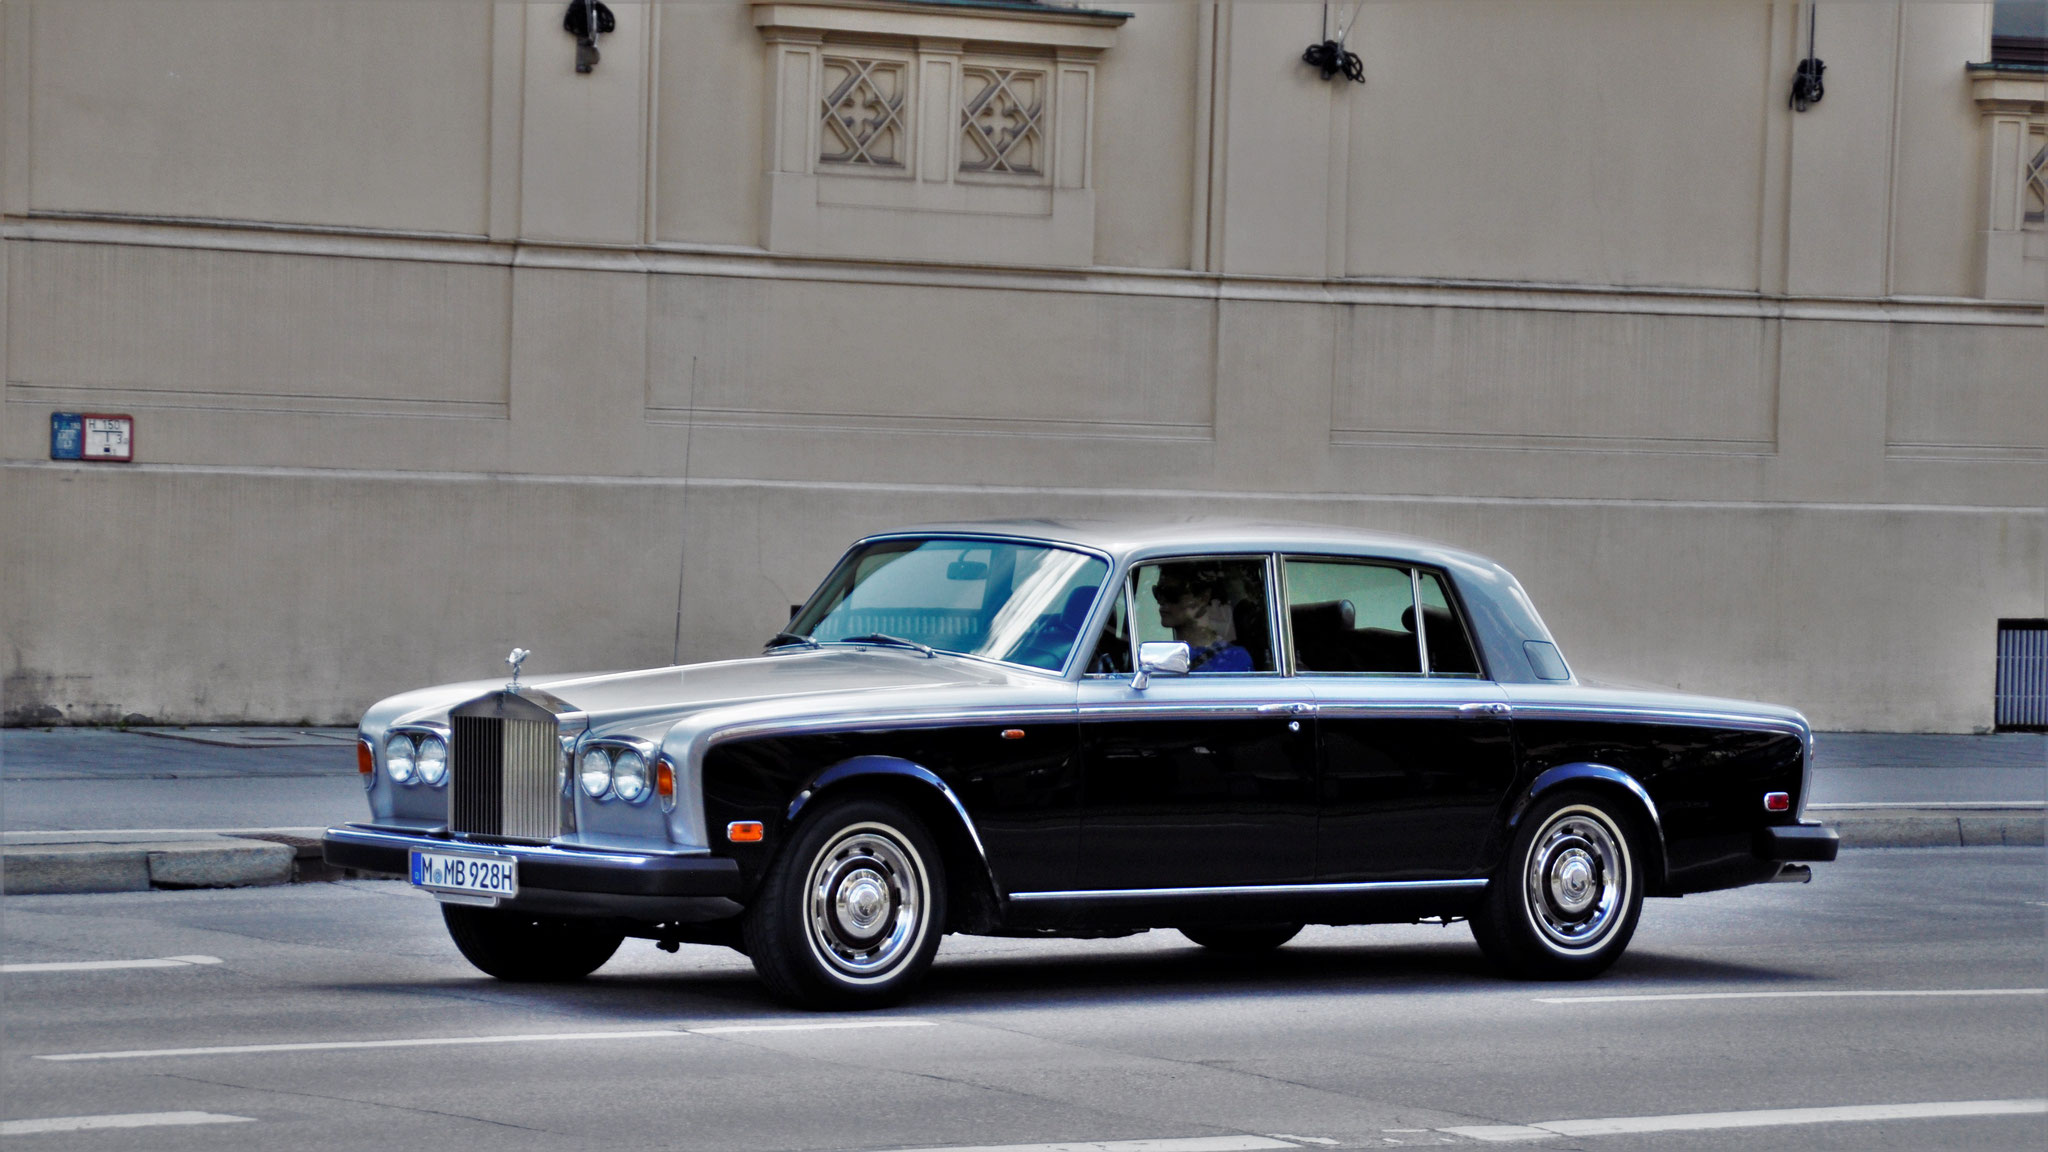 Rolls Royce Silver Shadow - M-MB-928H